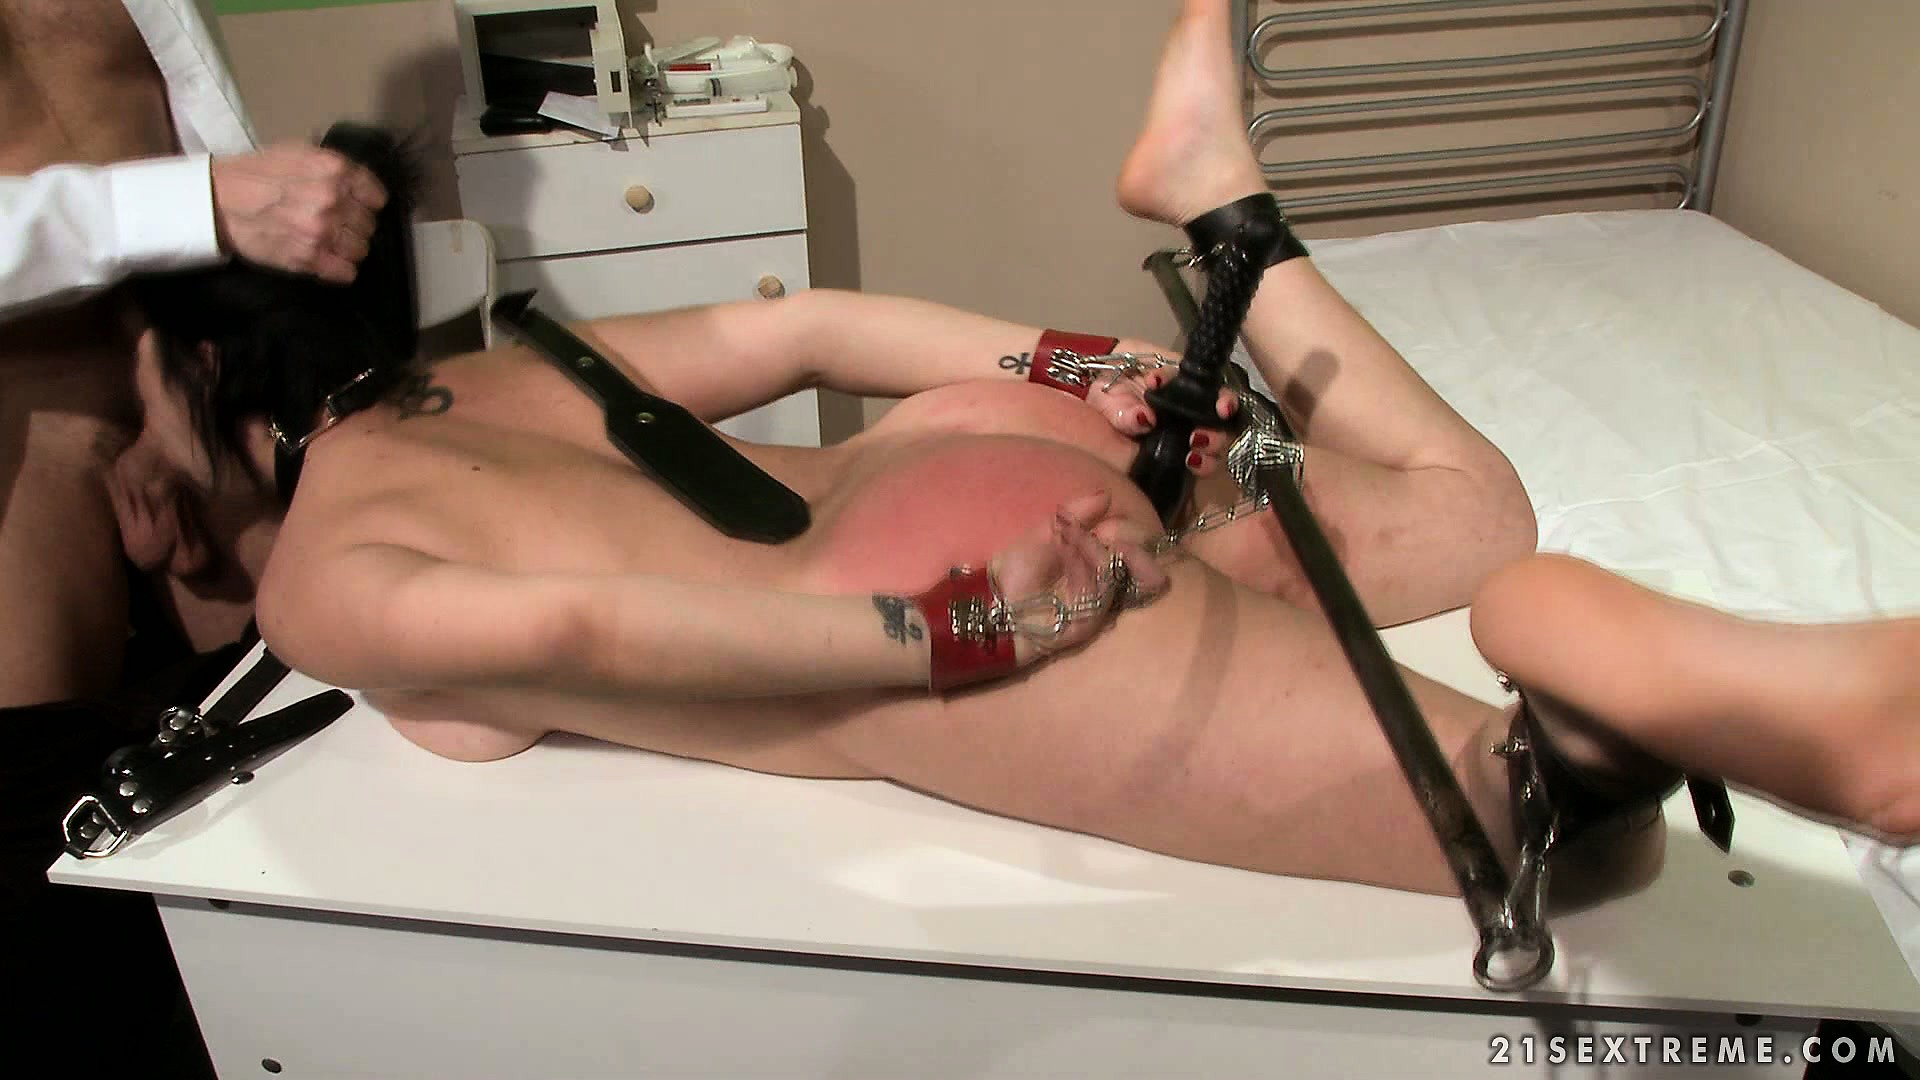 Porn Tube of She's Tied Up And Gagged And Gets Her Ass Whacked Before She Blows